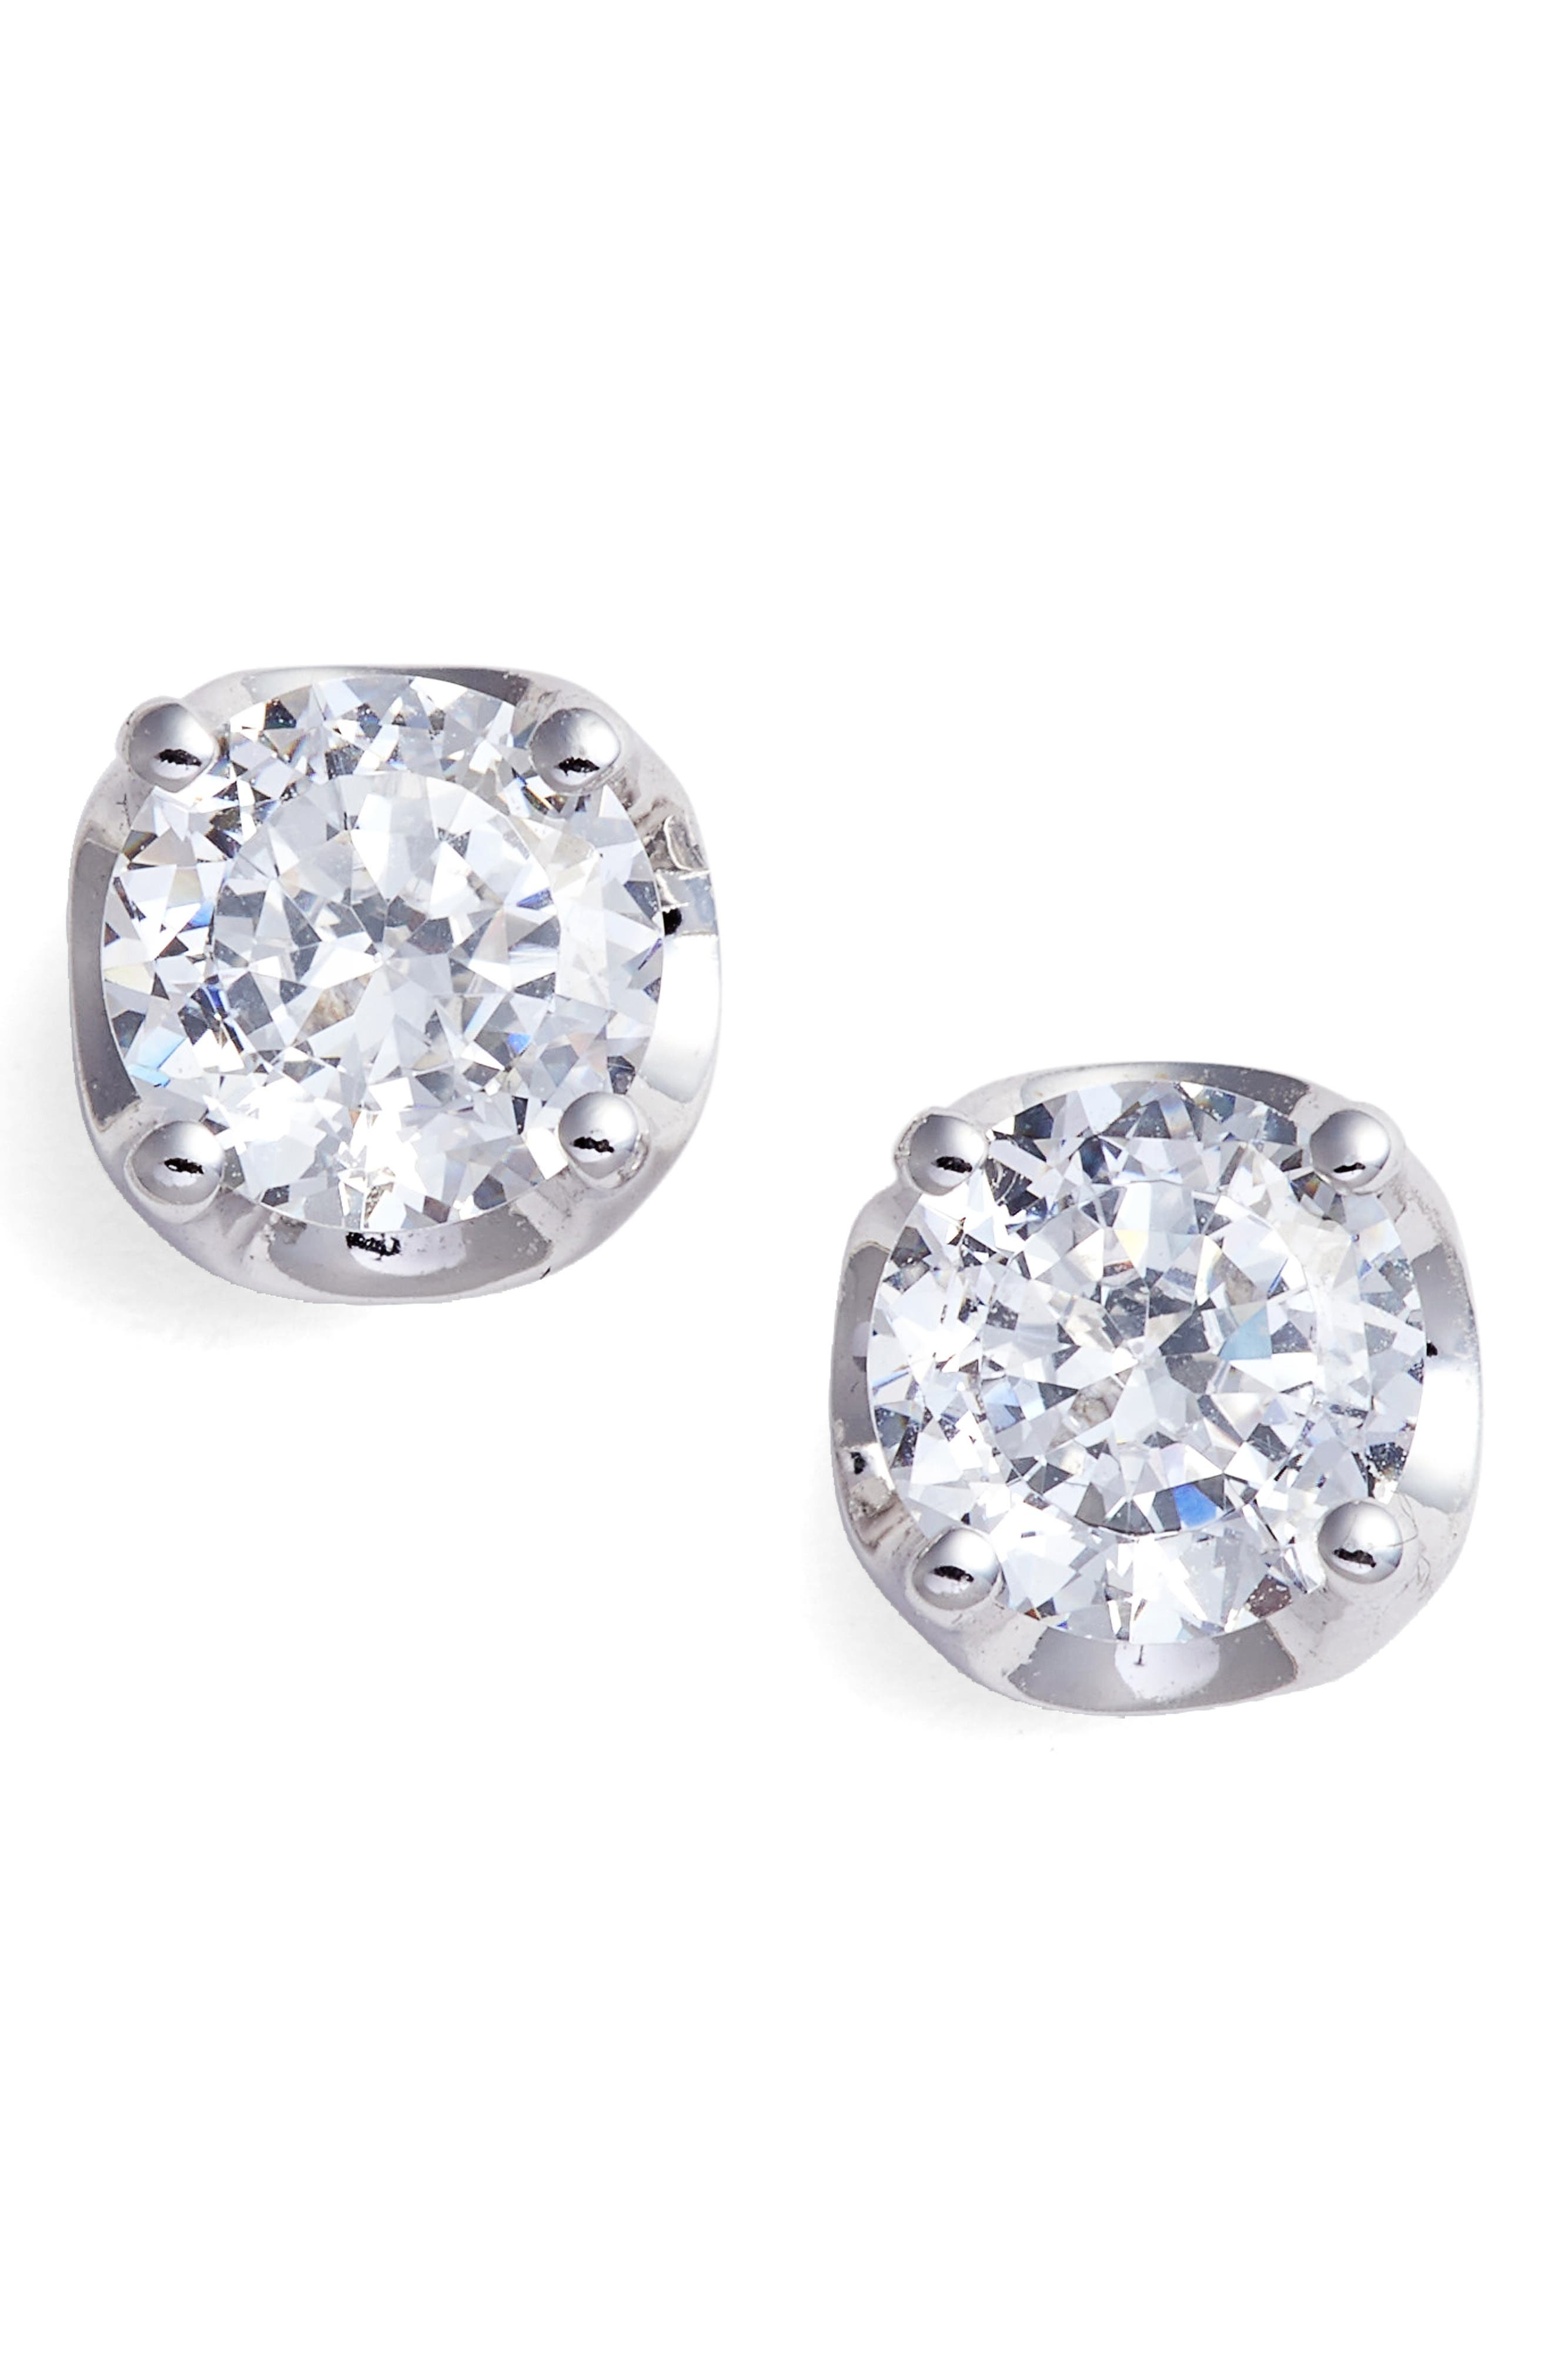 Simulated Diamond Earrings,                         Main,                         color, Silver/ Clear